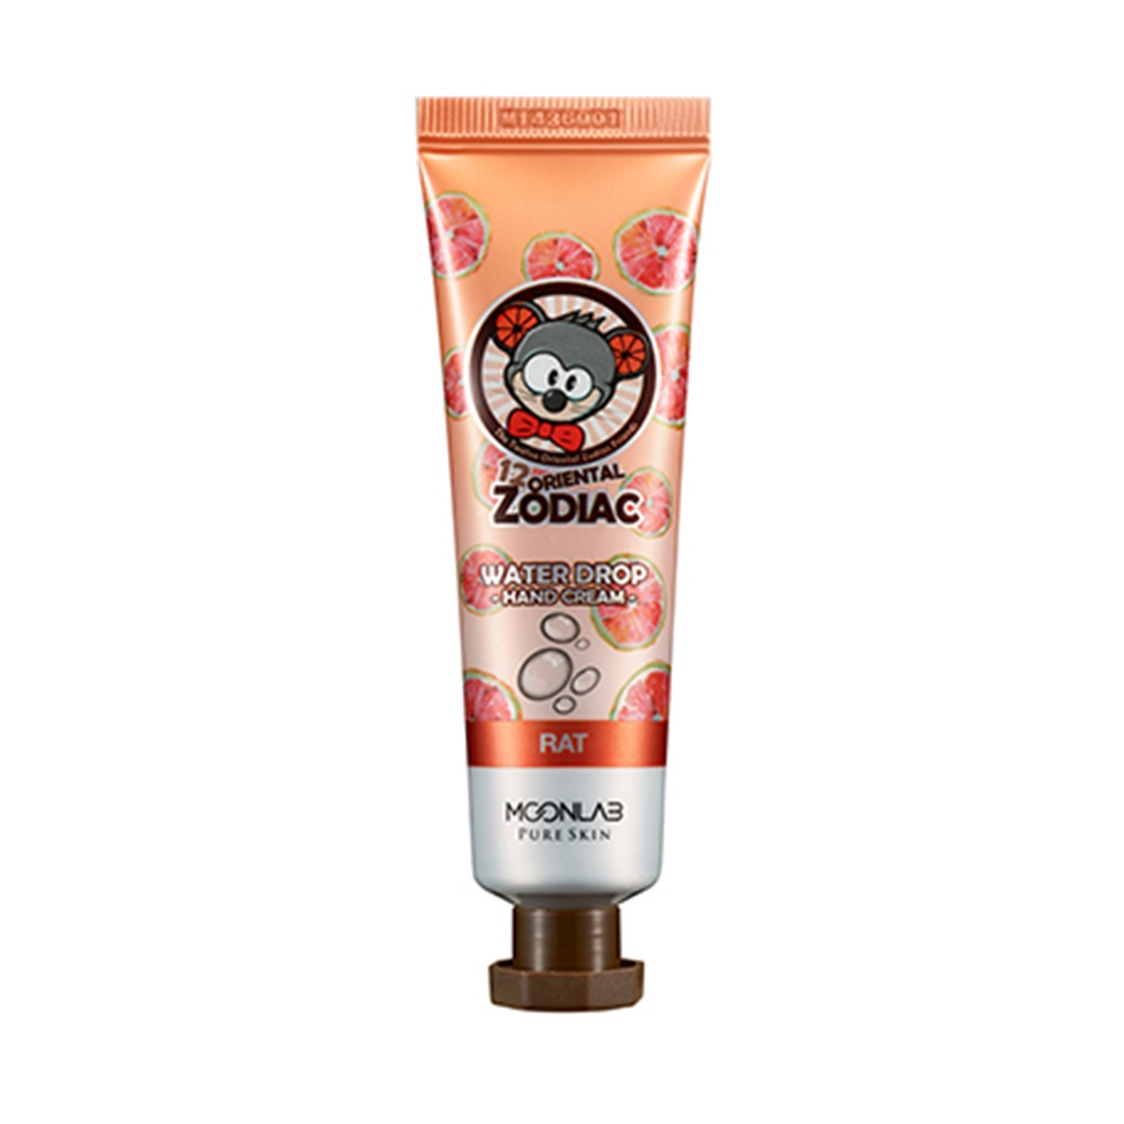 MoonLab Zodiac Handcream 30ml - Rat